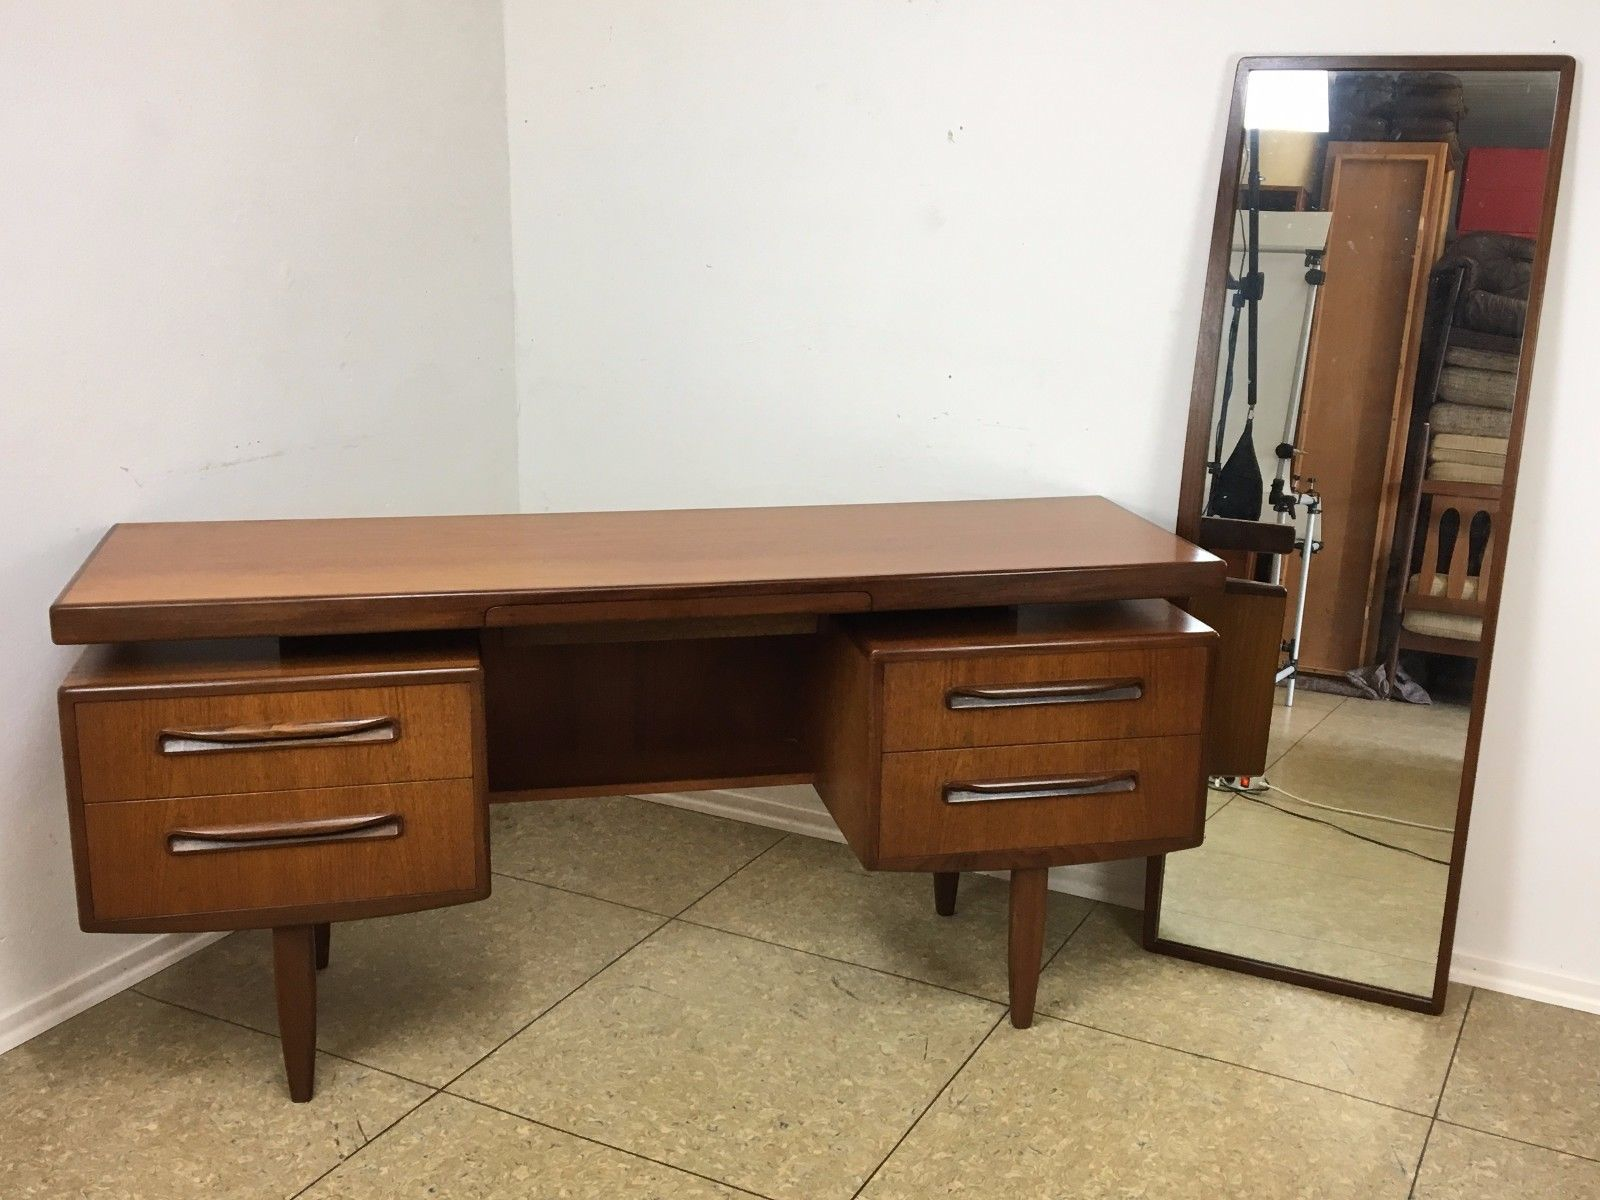 Teak Dressing Table With Mirror By Victor Wilkins For G Plan, 1970s